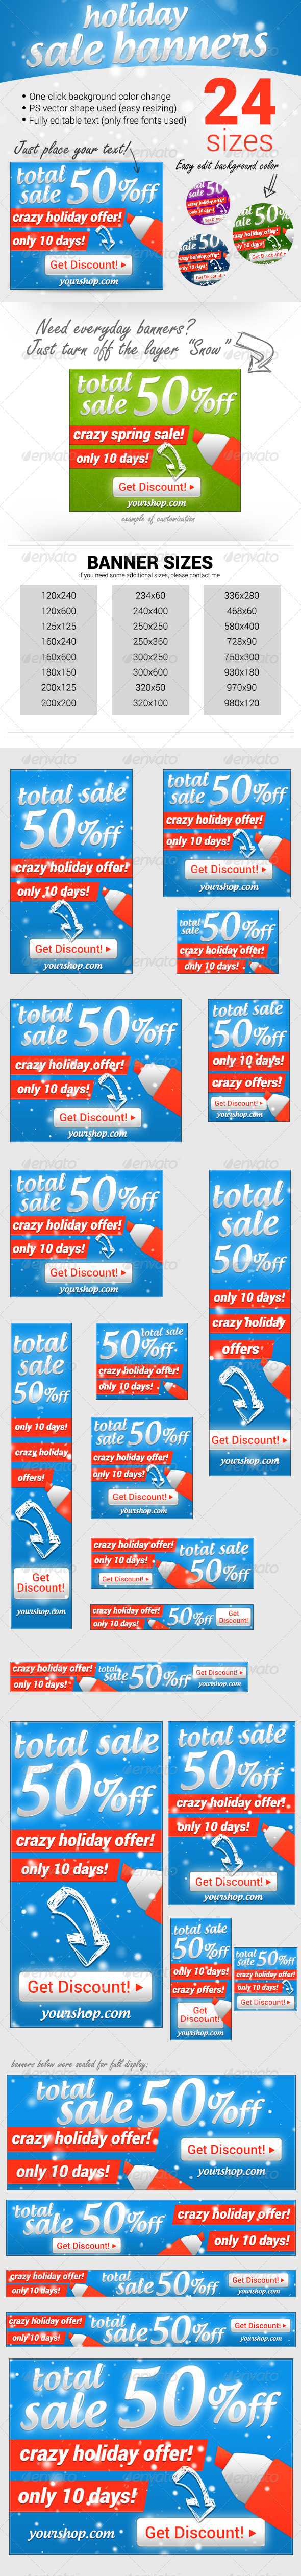 GraphicRiver Holiday Sale Ad Banners 6471476